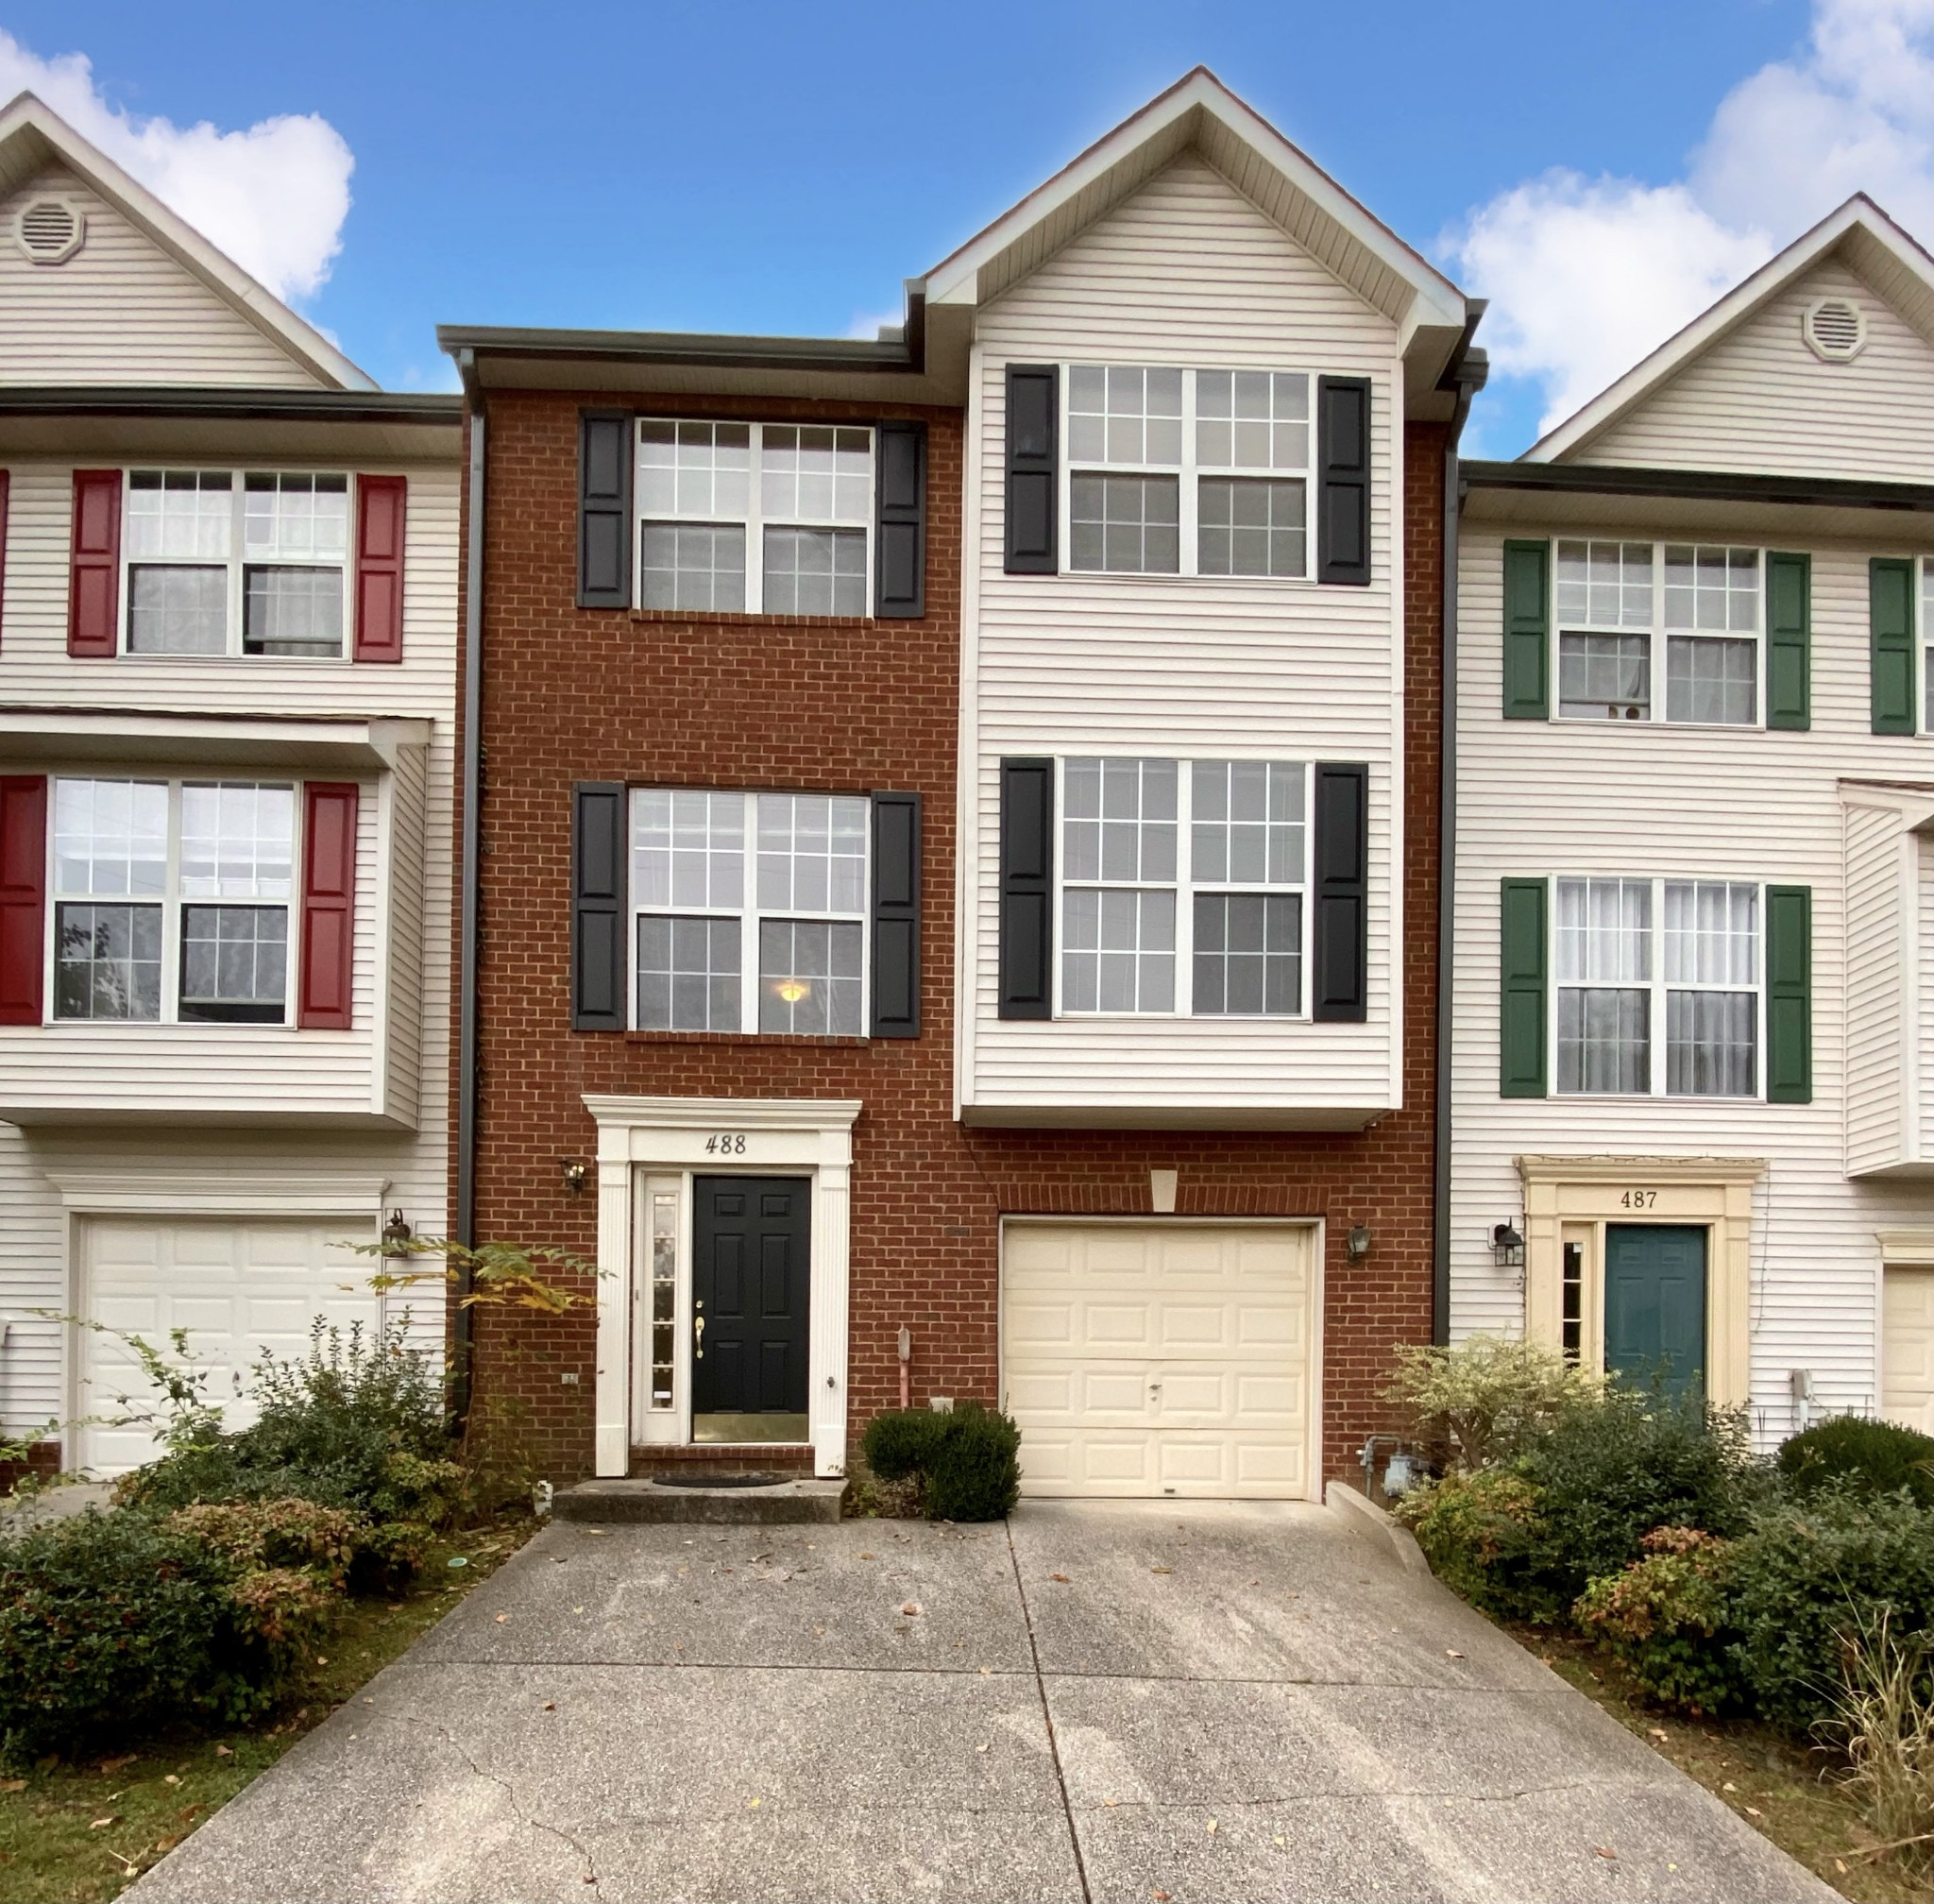 Rare chance to own a townhome in sought-after Huntington Ridge! Handscraped engineered wood flooring! Gas range and double oven in the open eat-in kitchen! 1 car garage plus large driveway parking! Bonus room in lower level! Private deck! This community offers 2 pools! Gas fireplace! Huge master suite!